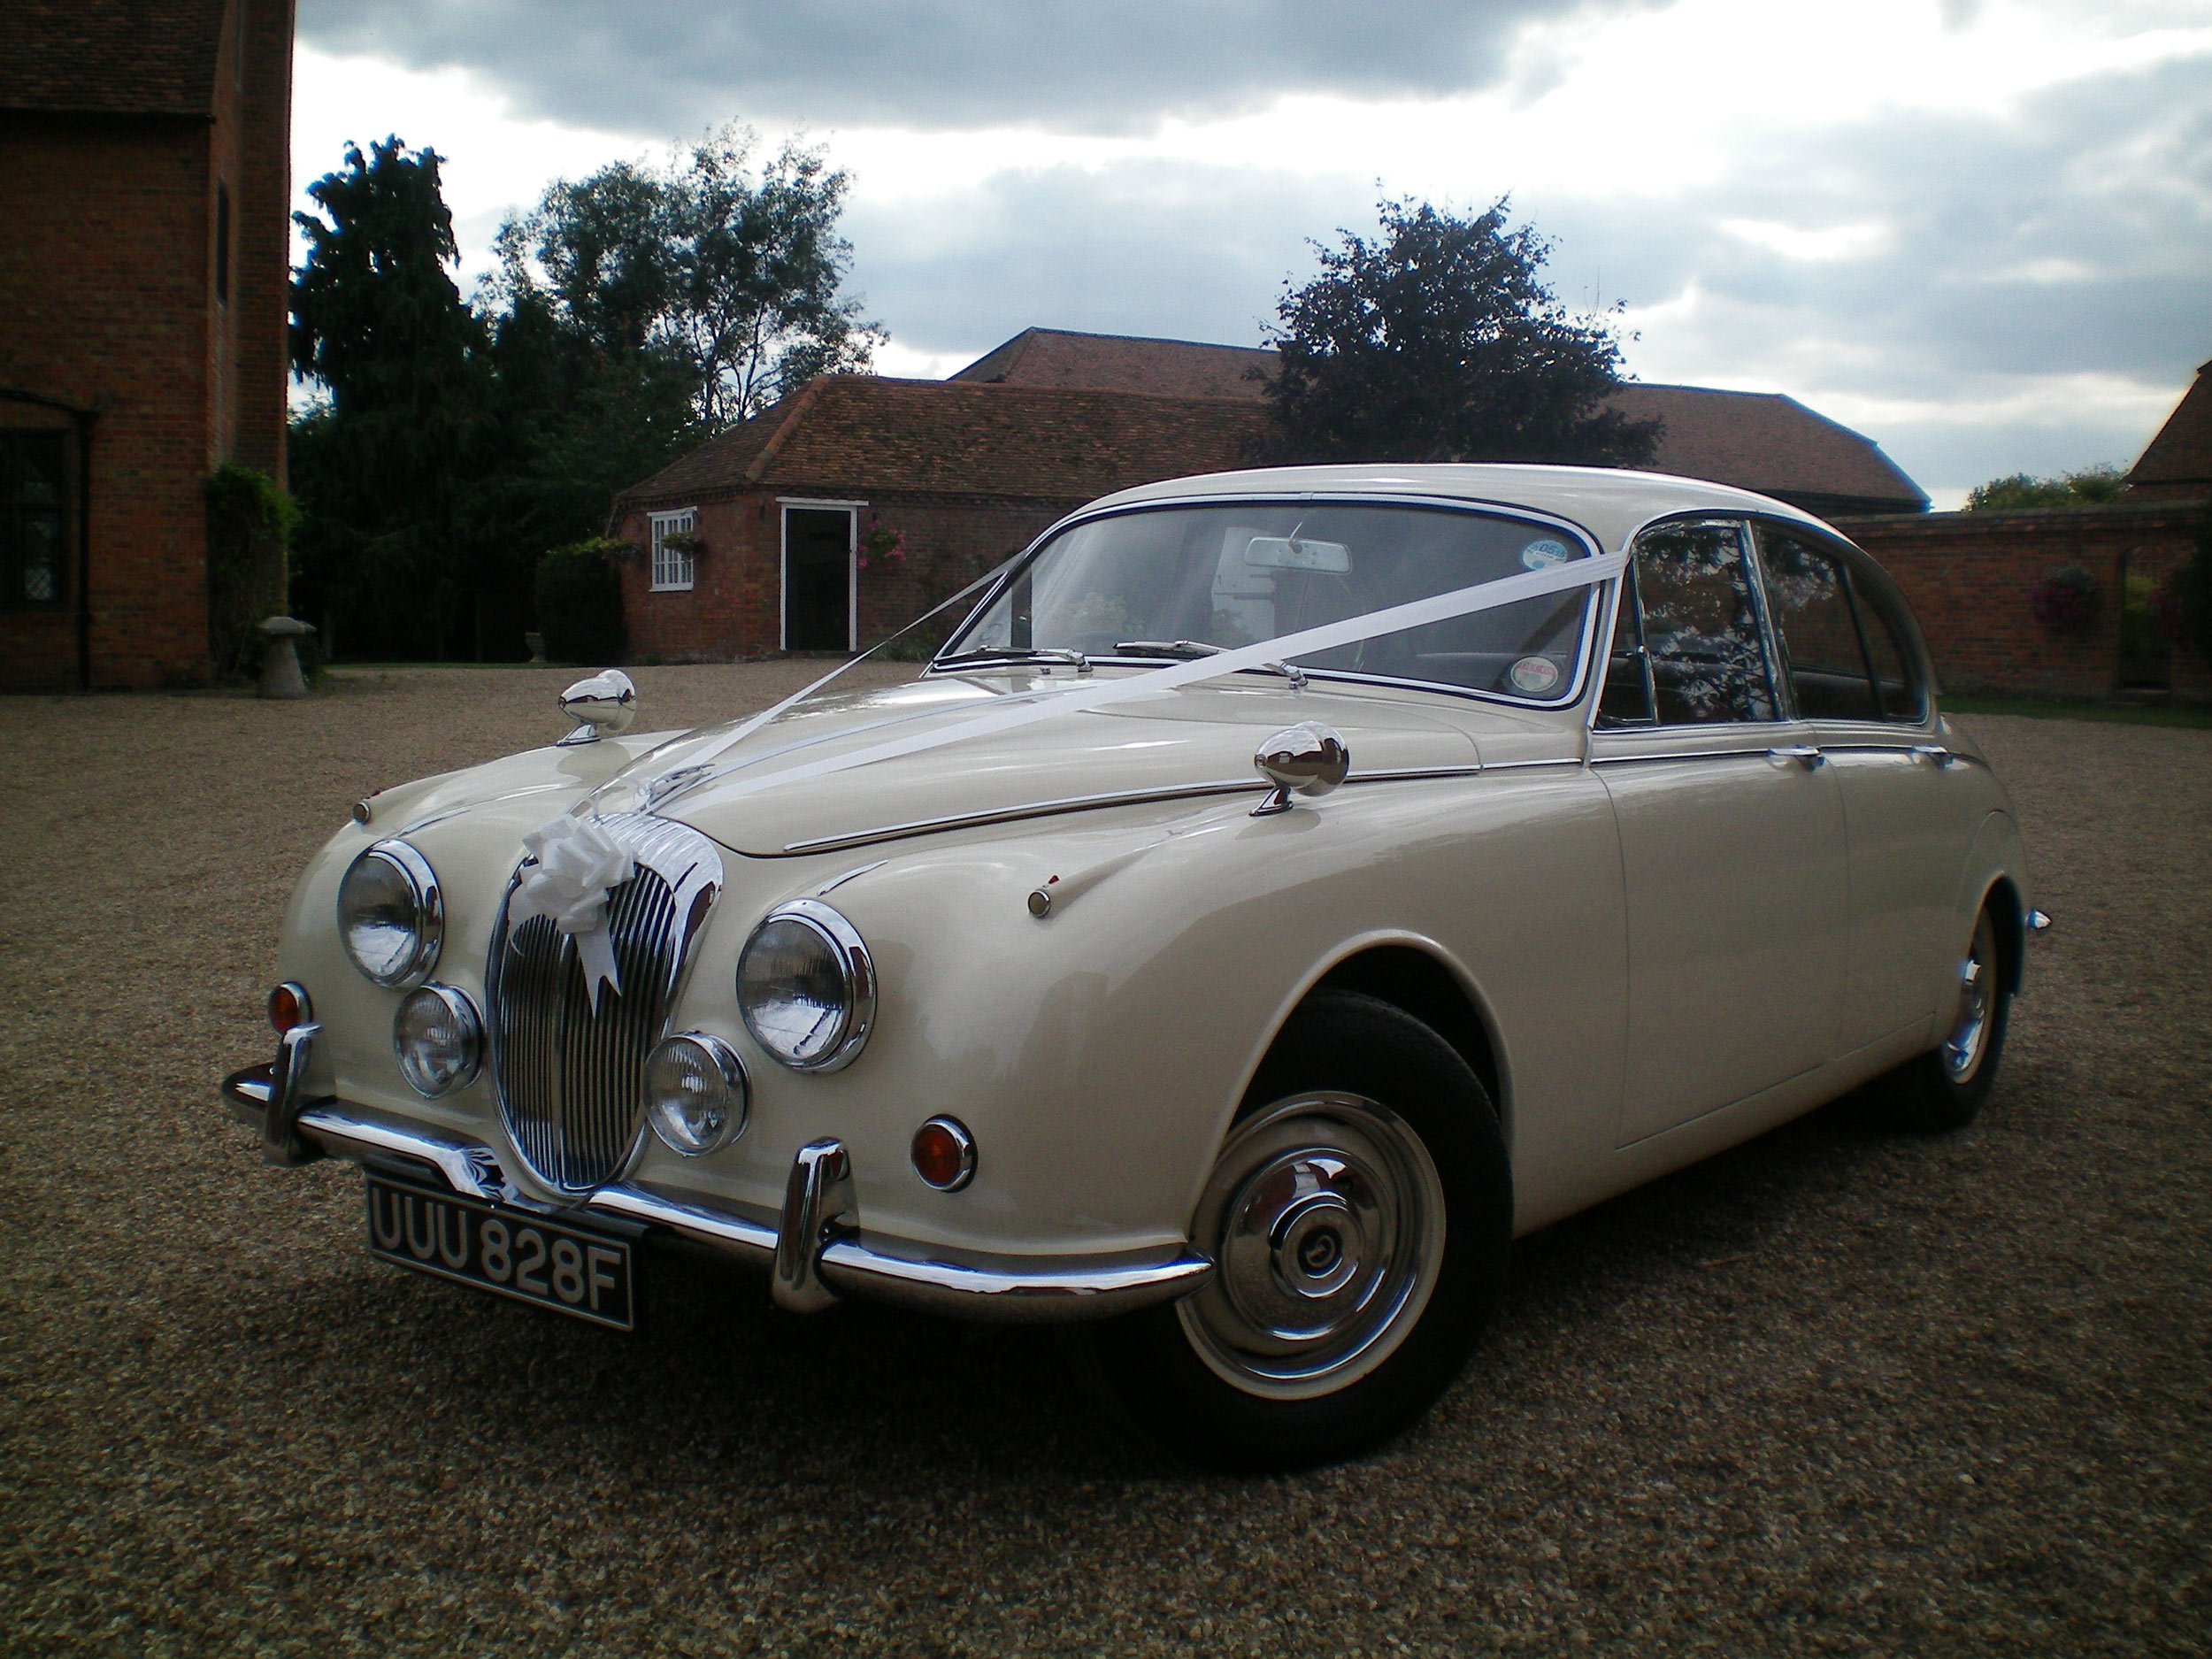 Daimler V8 at Lillibrooke Manor